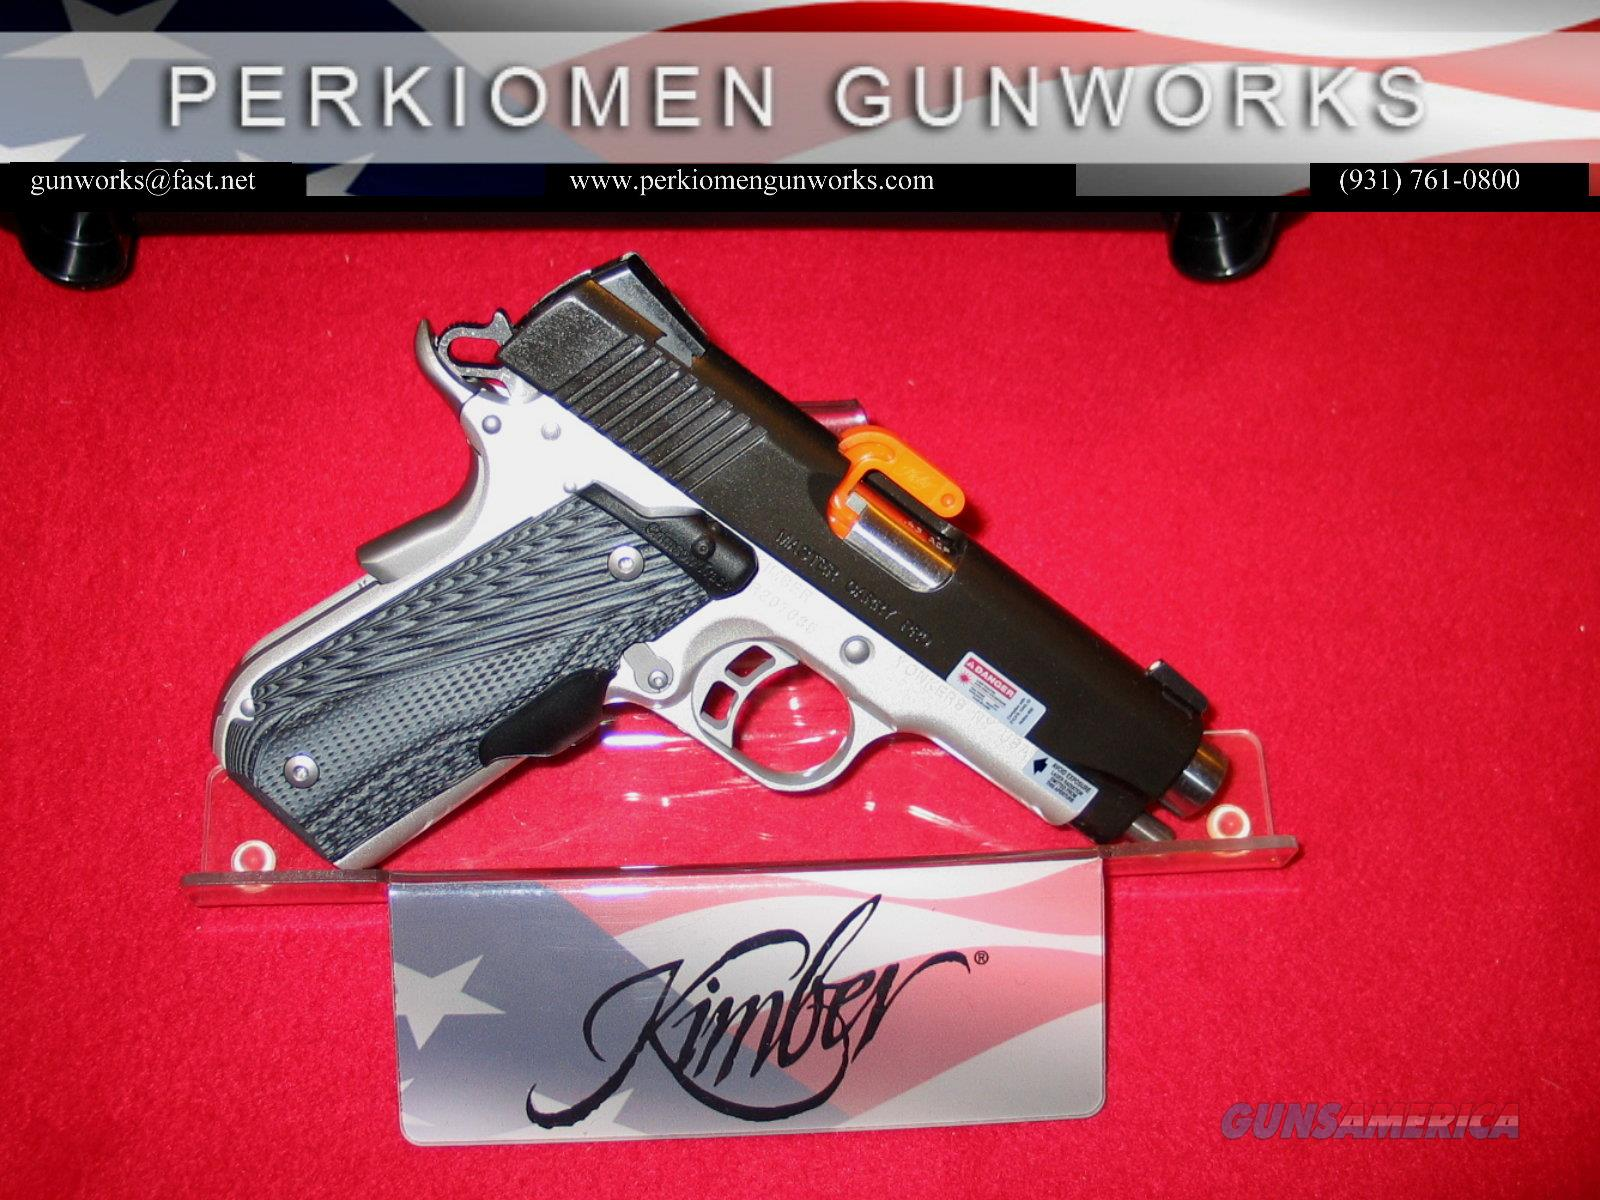 "Master Carry Pro (NS) (LG) 45acp, 4"", Nite Sights & Laser Grips - New in Box  Guns > Pistols > Kimber of America Pistols"